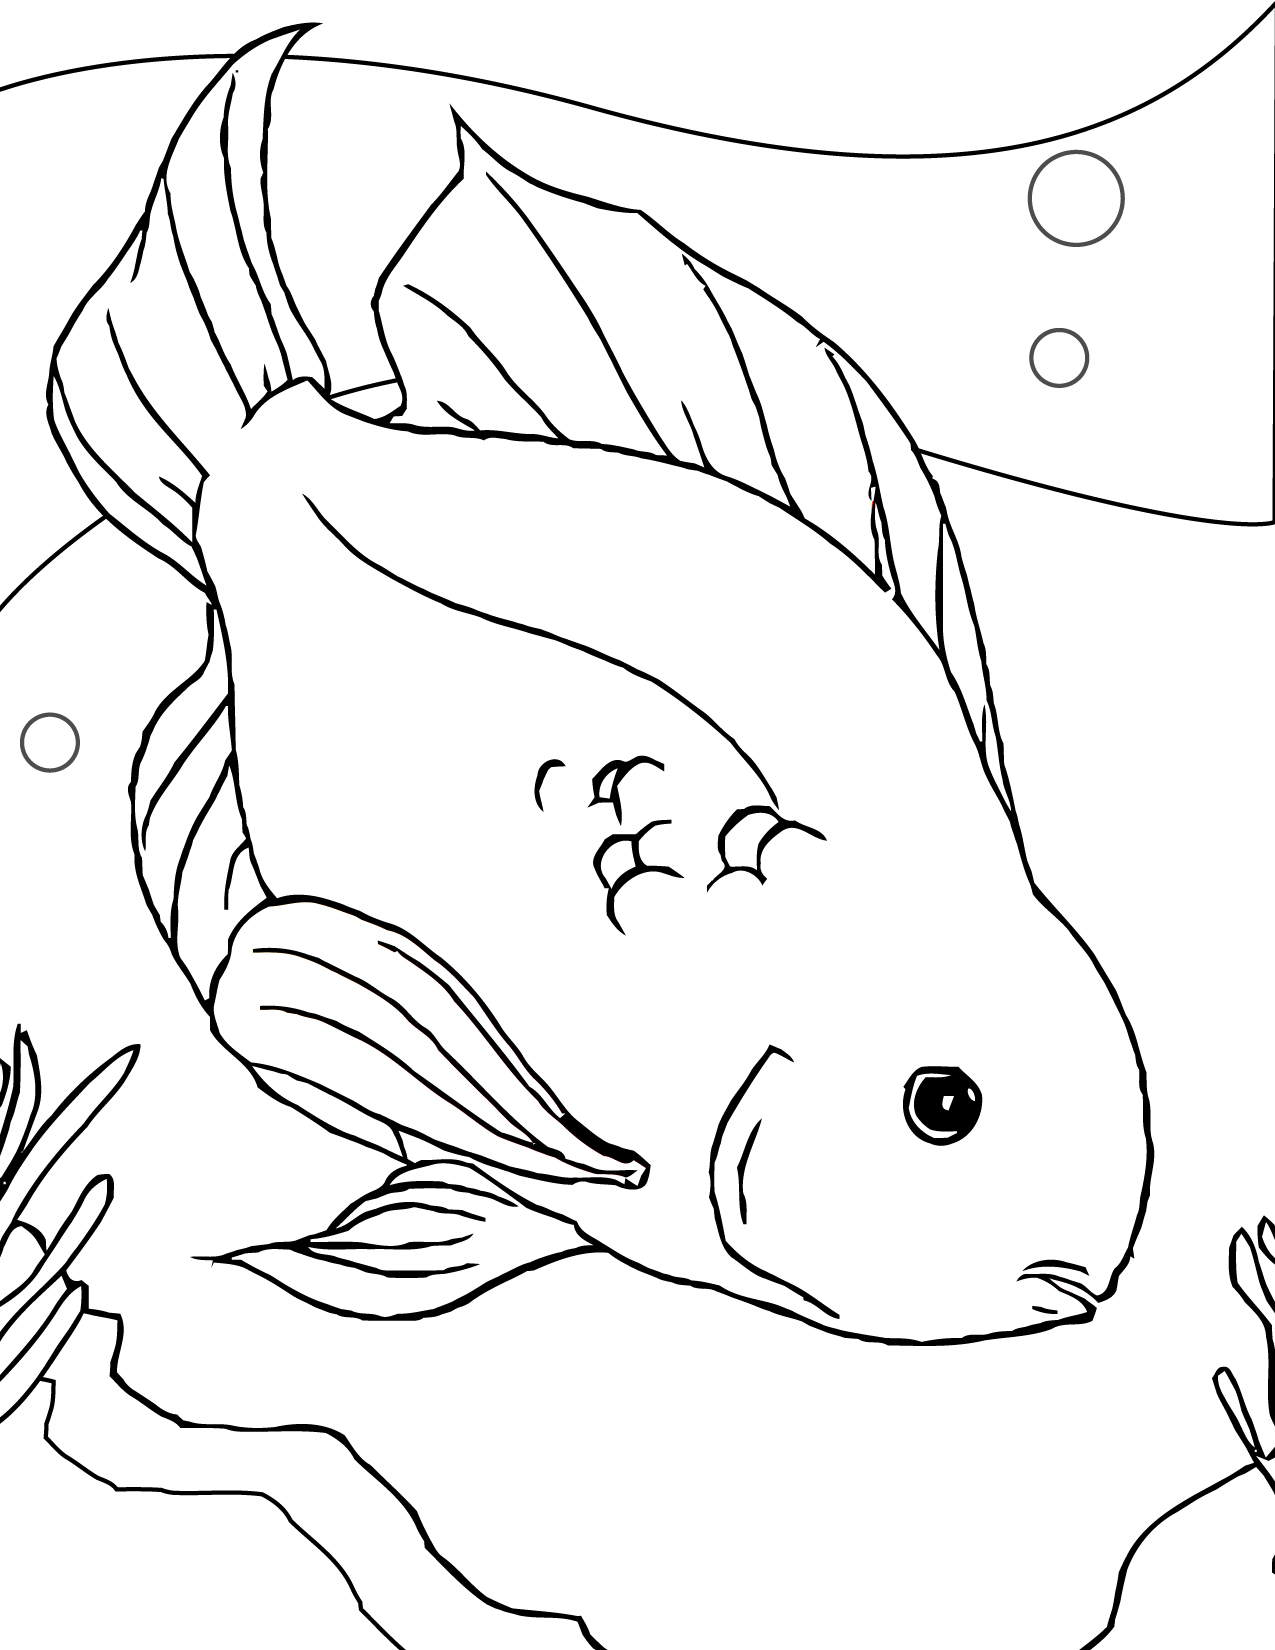 coloring pages of fishing - photo#33